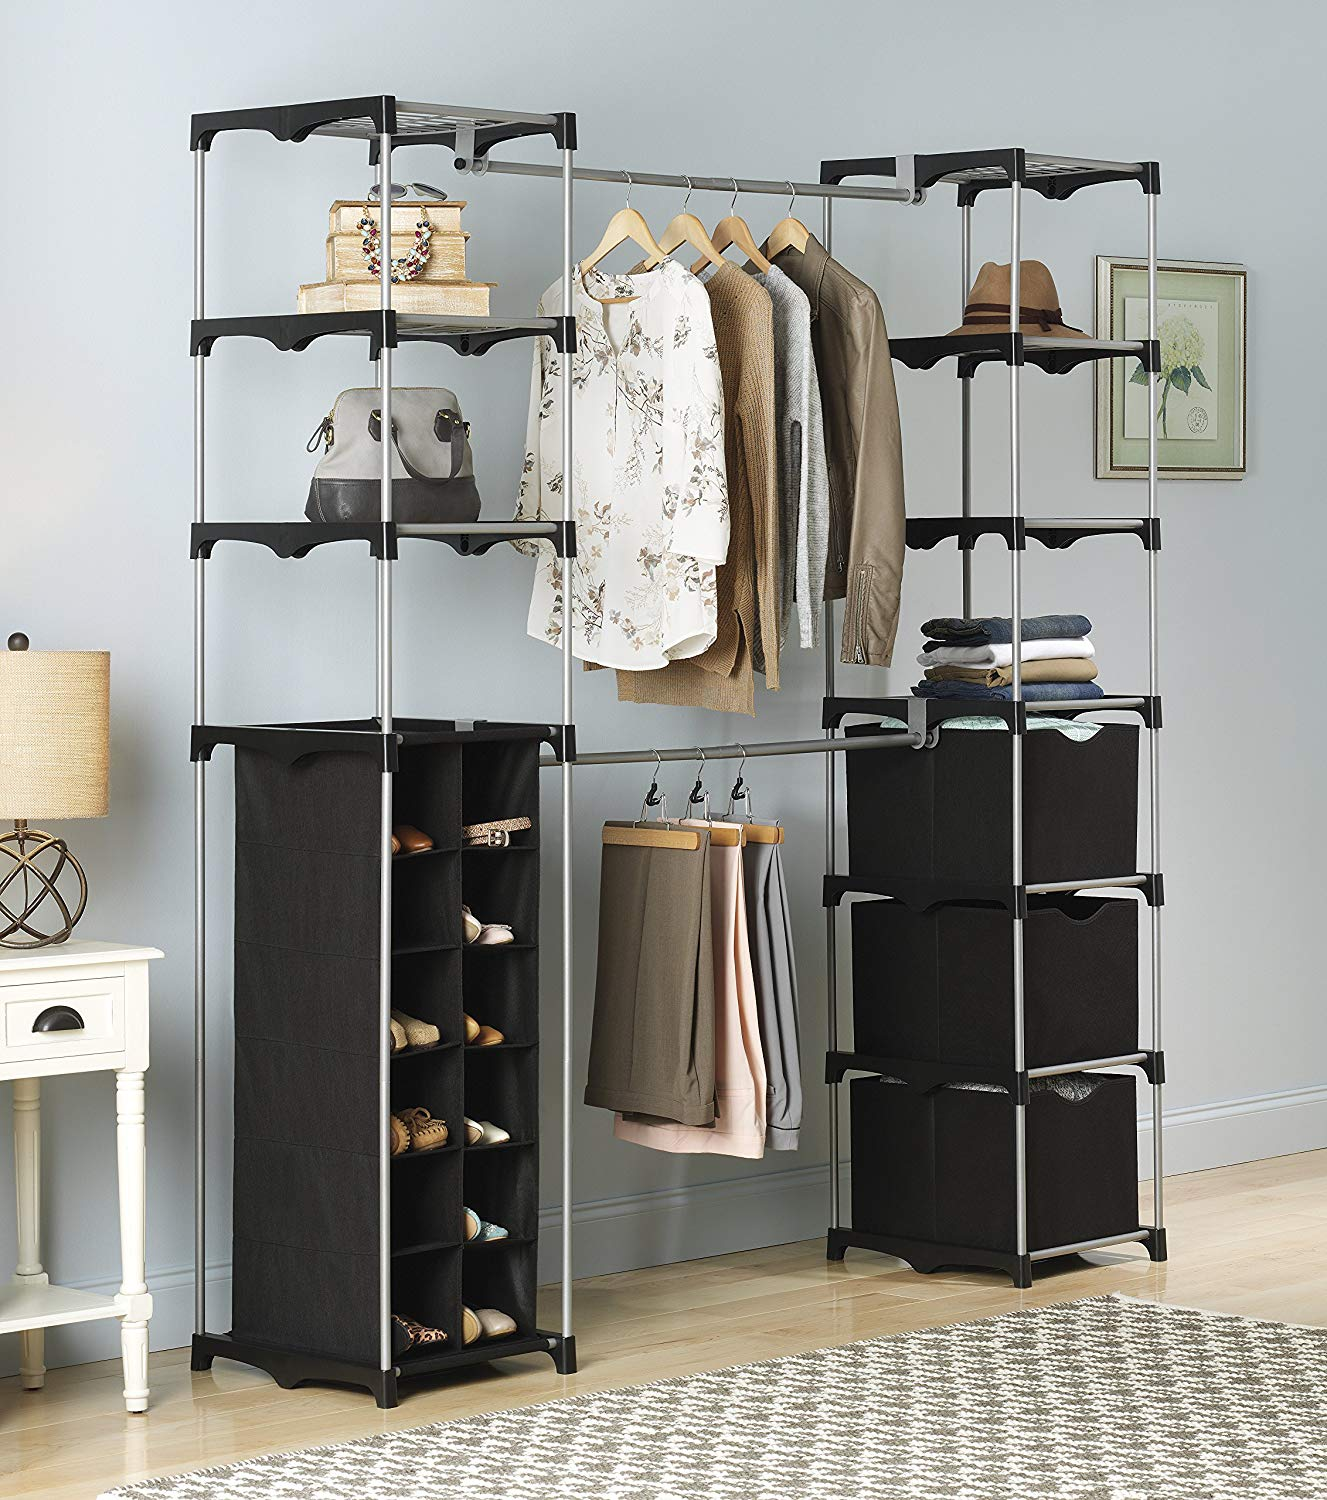 Best DIY Closet Organizer Systems